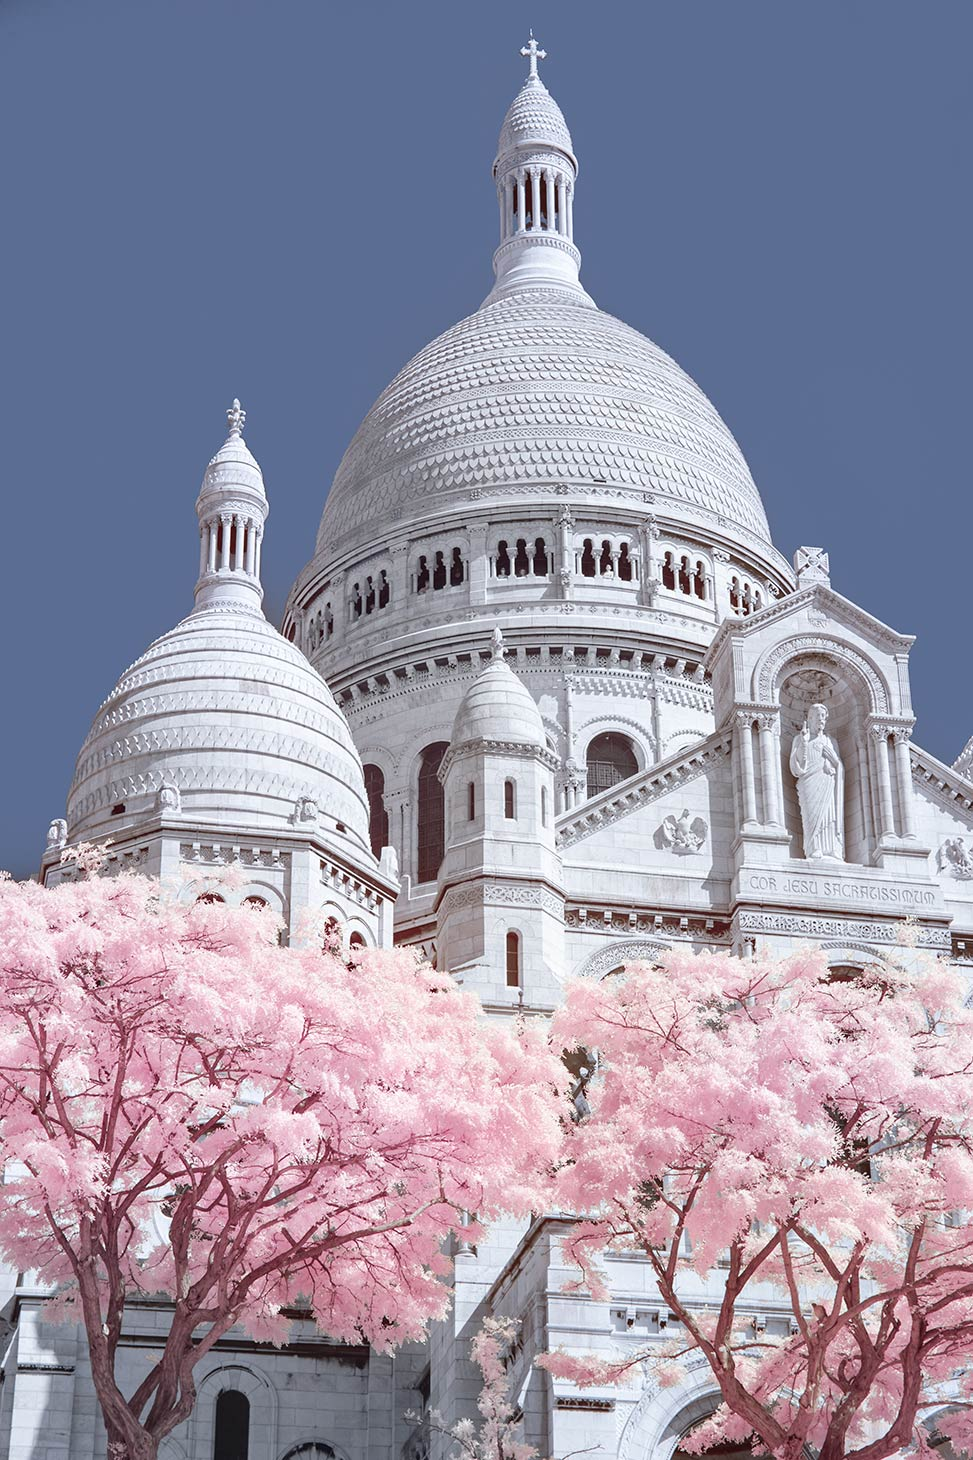 Paris in Pink - Shooting Infrared in Paris